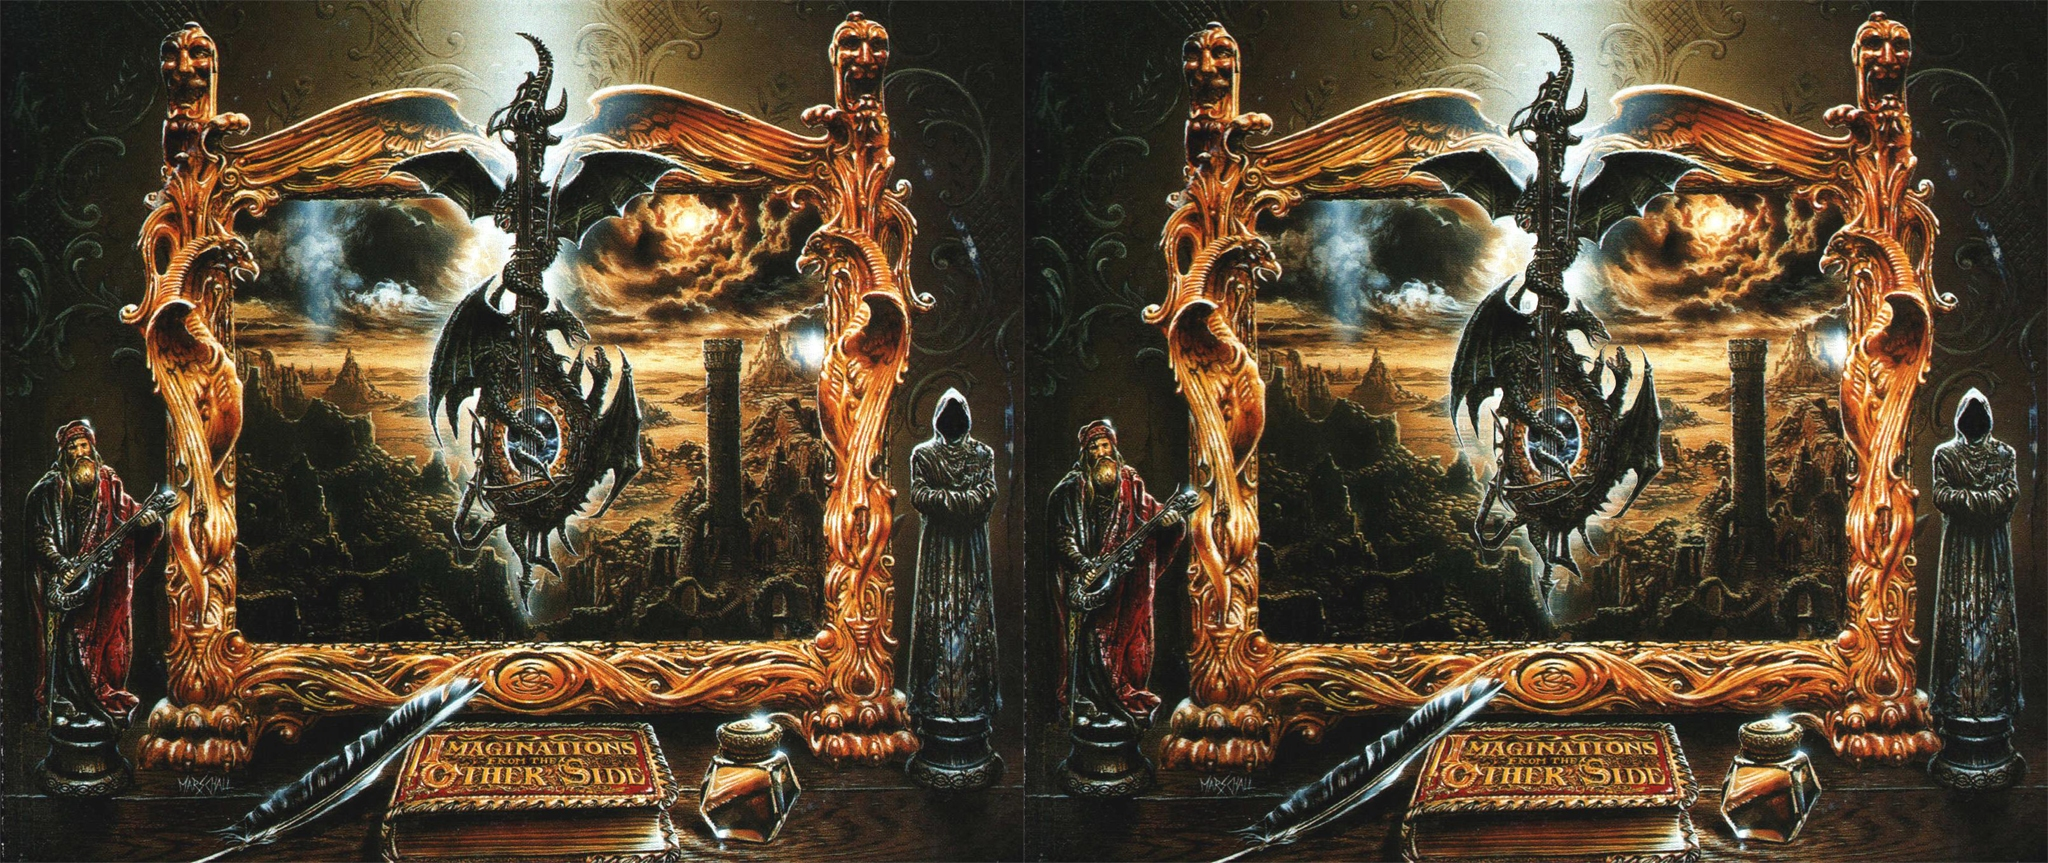 Blind Guardian - Imaginations from the other Side - Side By Side JPS Format